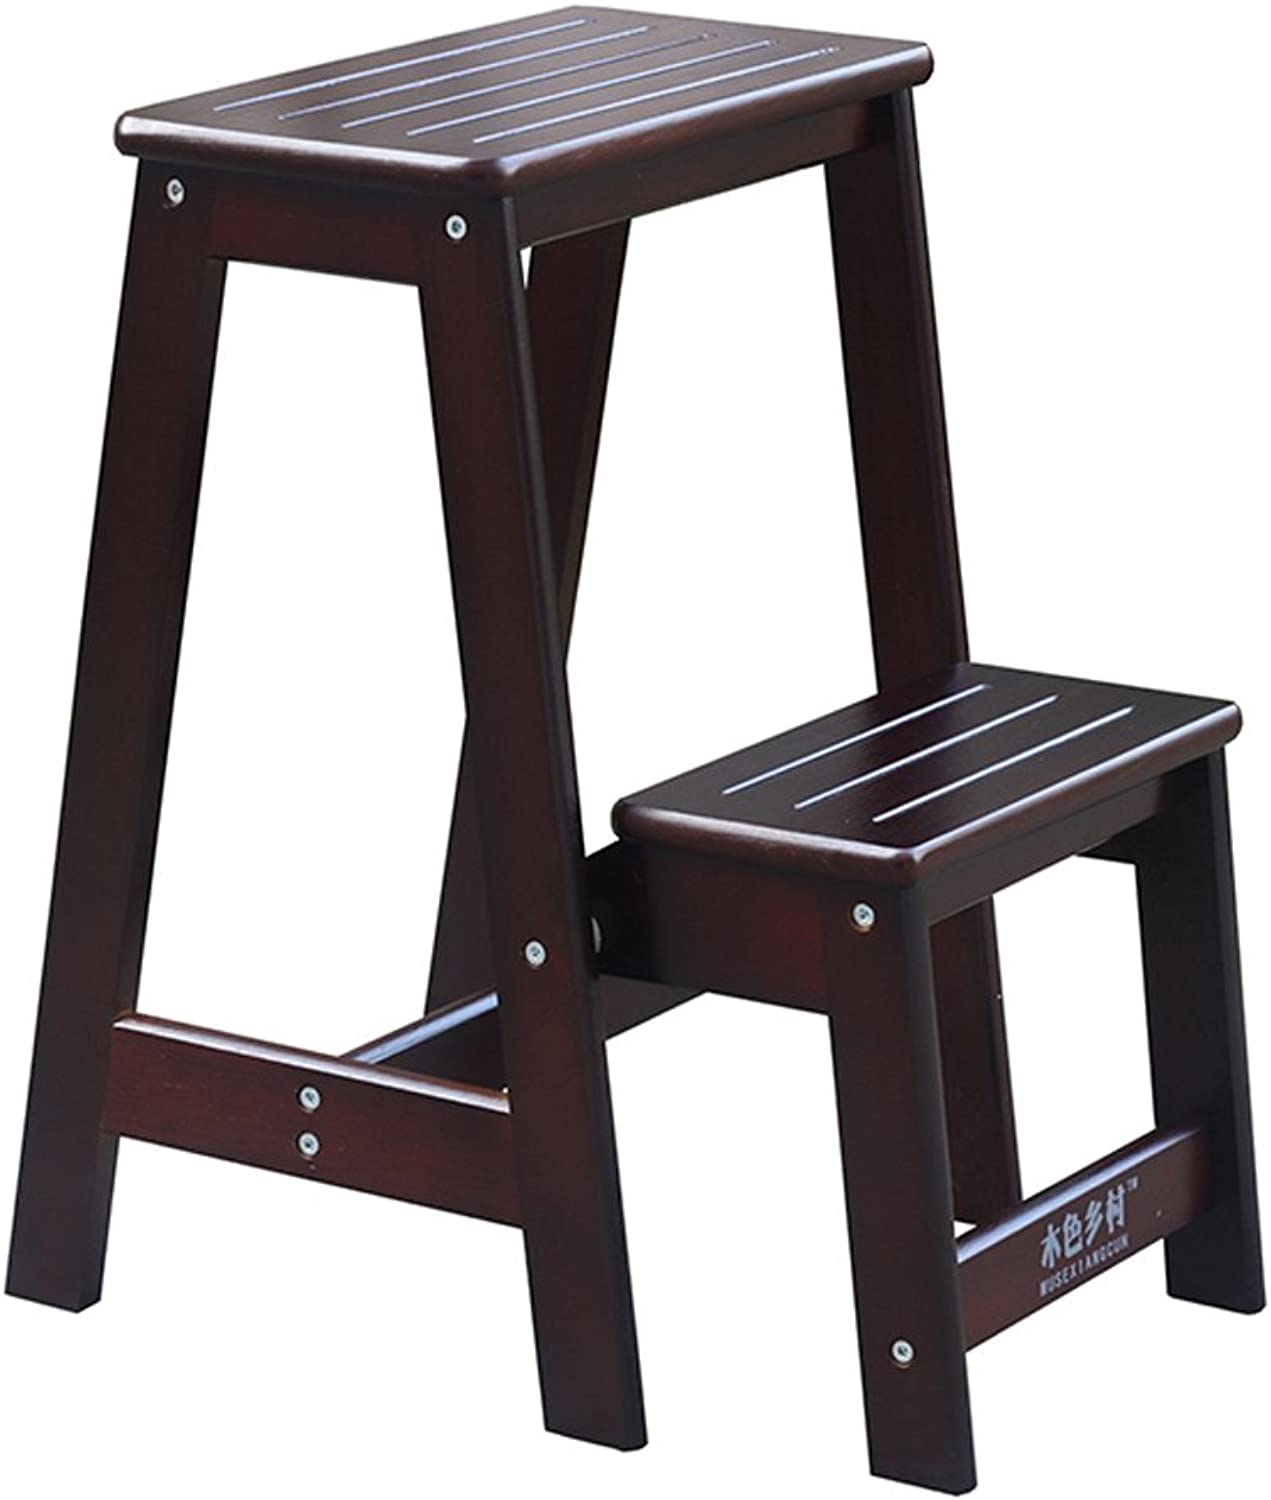 Indoor Wooden Small 2-Tier Ladder Foldable Stool Flower Stand for Living Room Balcony Furniture (color   C)